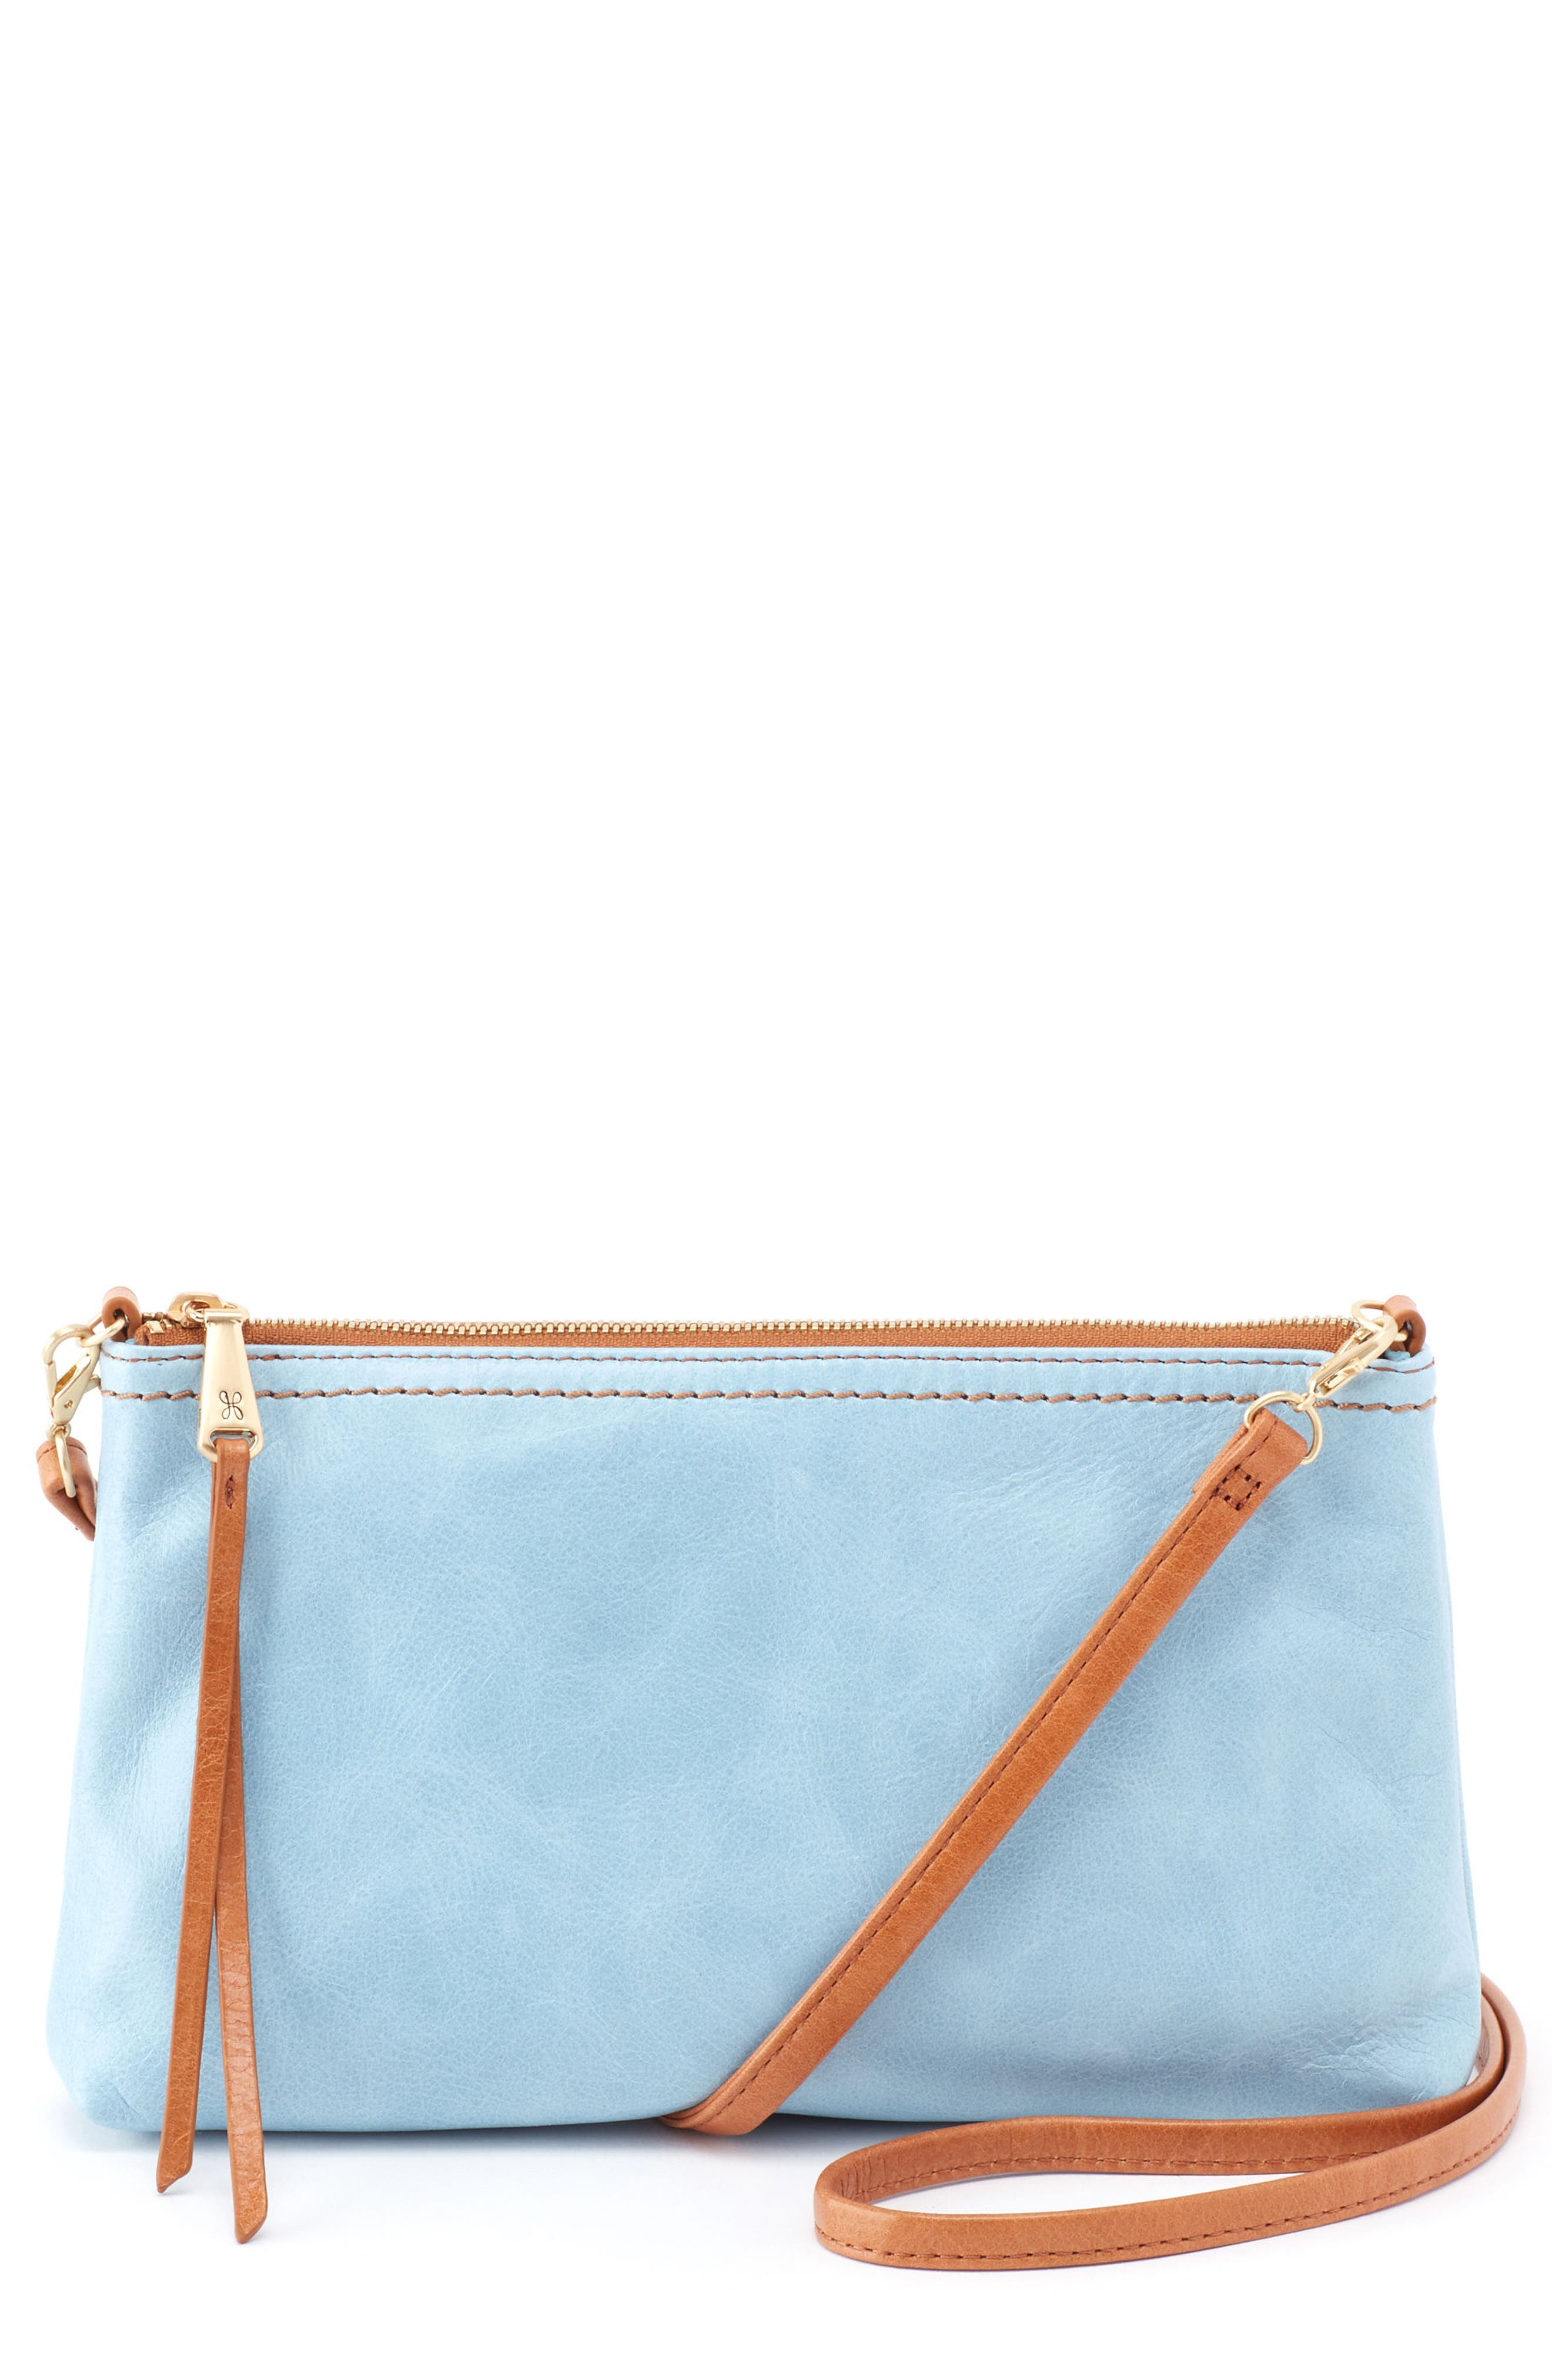 'Darcy' Leather Crossbody Bag,                             Main thumbnail 5, color,